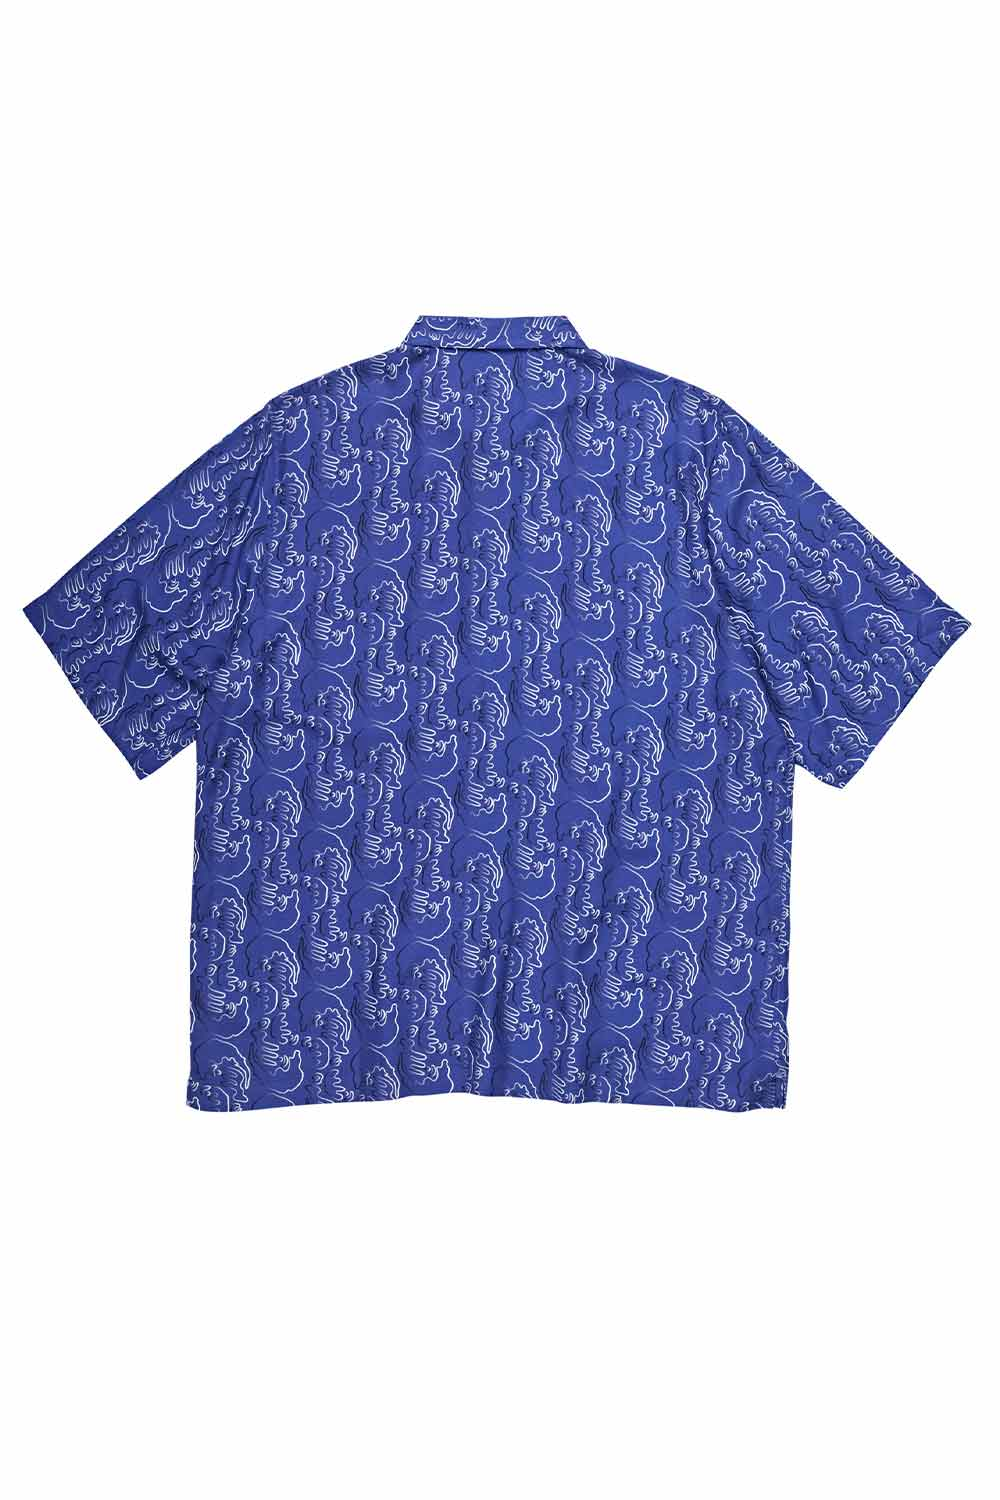 Polar Skate Co Art Shirt Faces - Blue